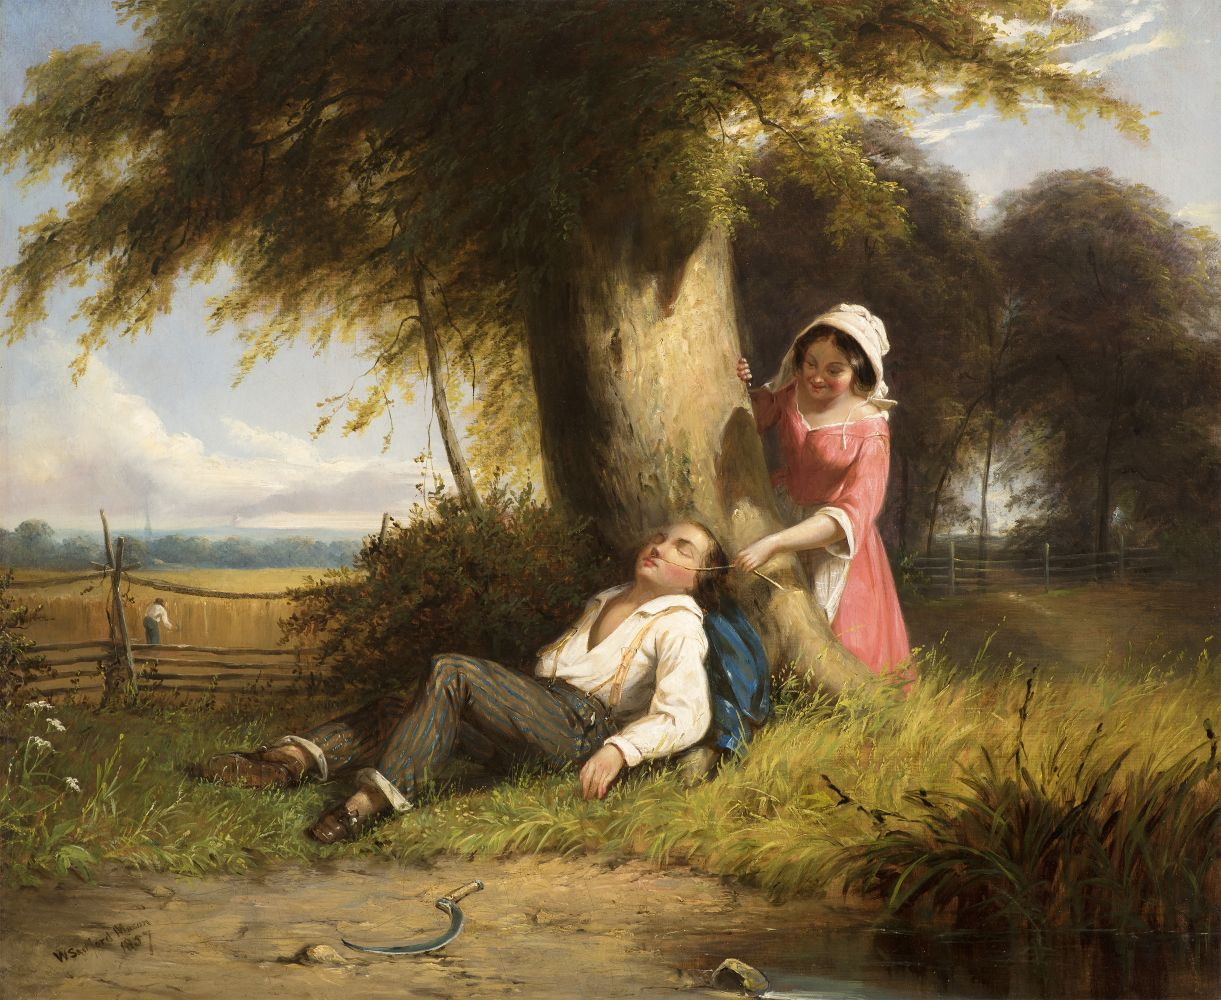 William Sanford Mason (1824–1864), Caught Napping, 1857, oil on canvas, 20 x 24 1/4 in., signed and dated lower right: W. Sanford Mason